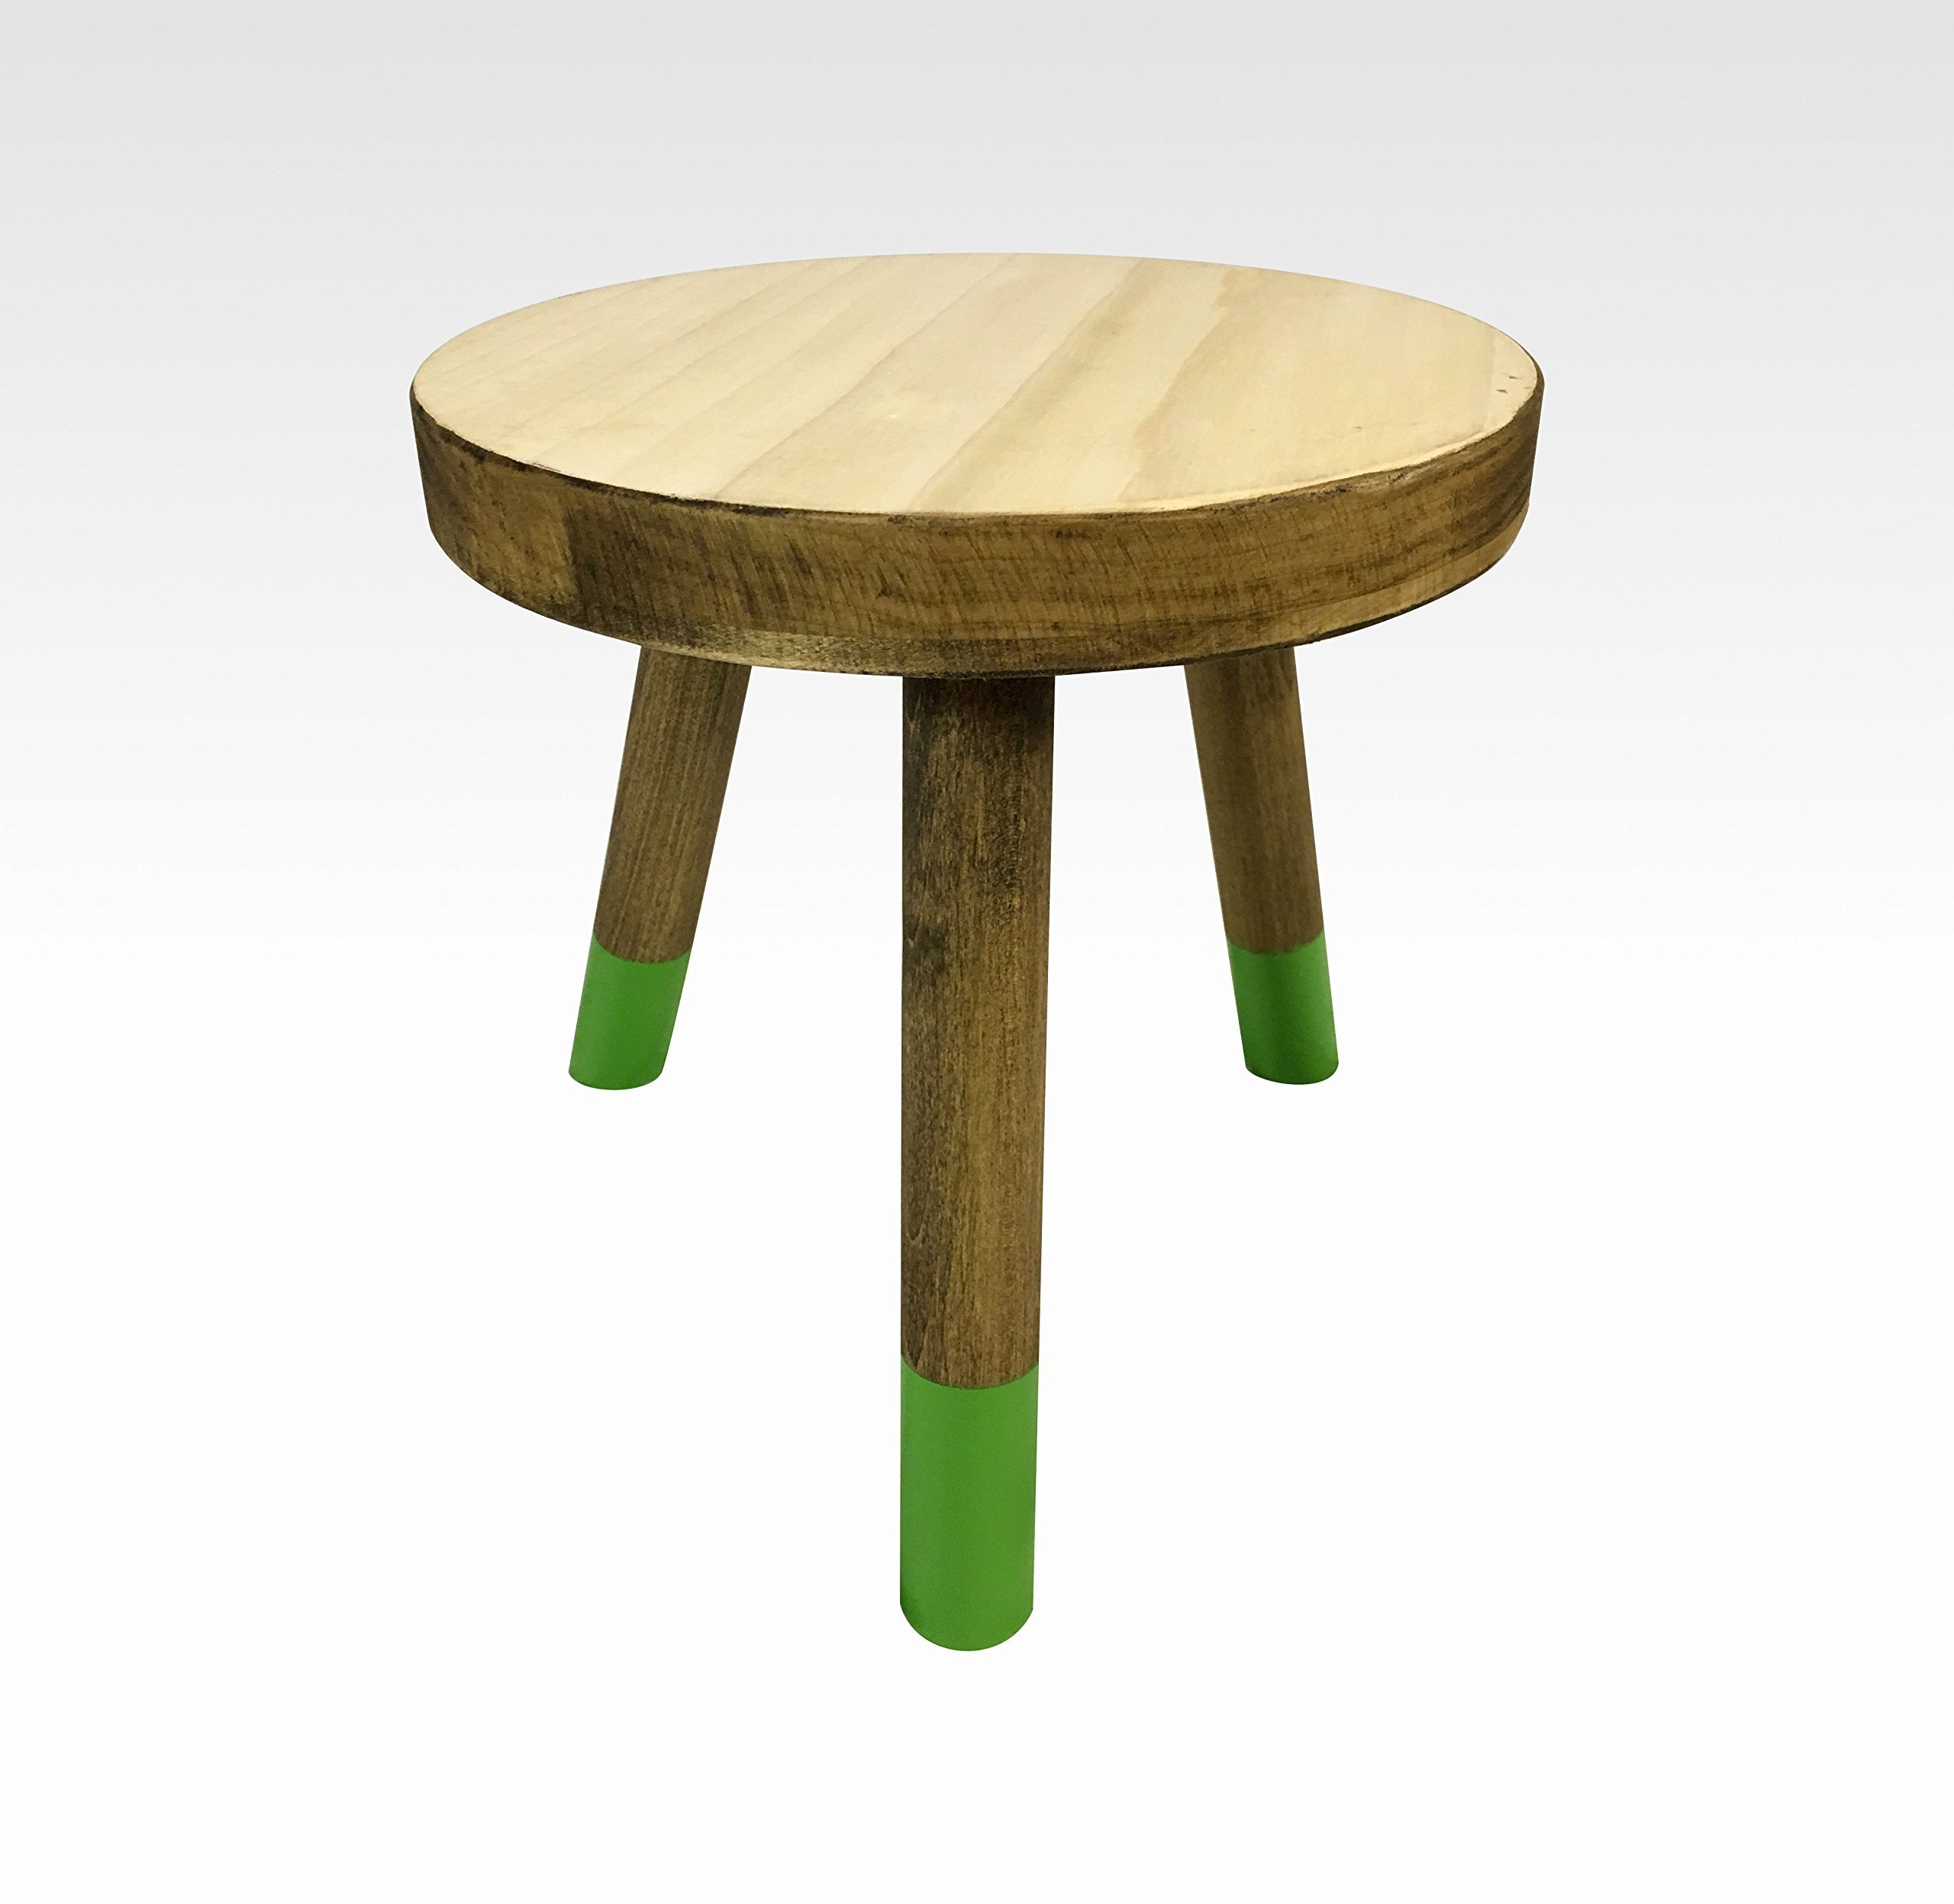 Small Wood Three Legged Stool, Modern Plant Stand in Pale and Black by Candlewood Furniture, Wooden, Tea Table, Kids Chair, Decorative